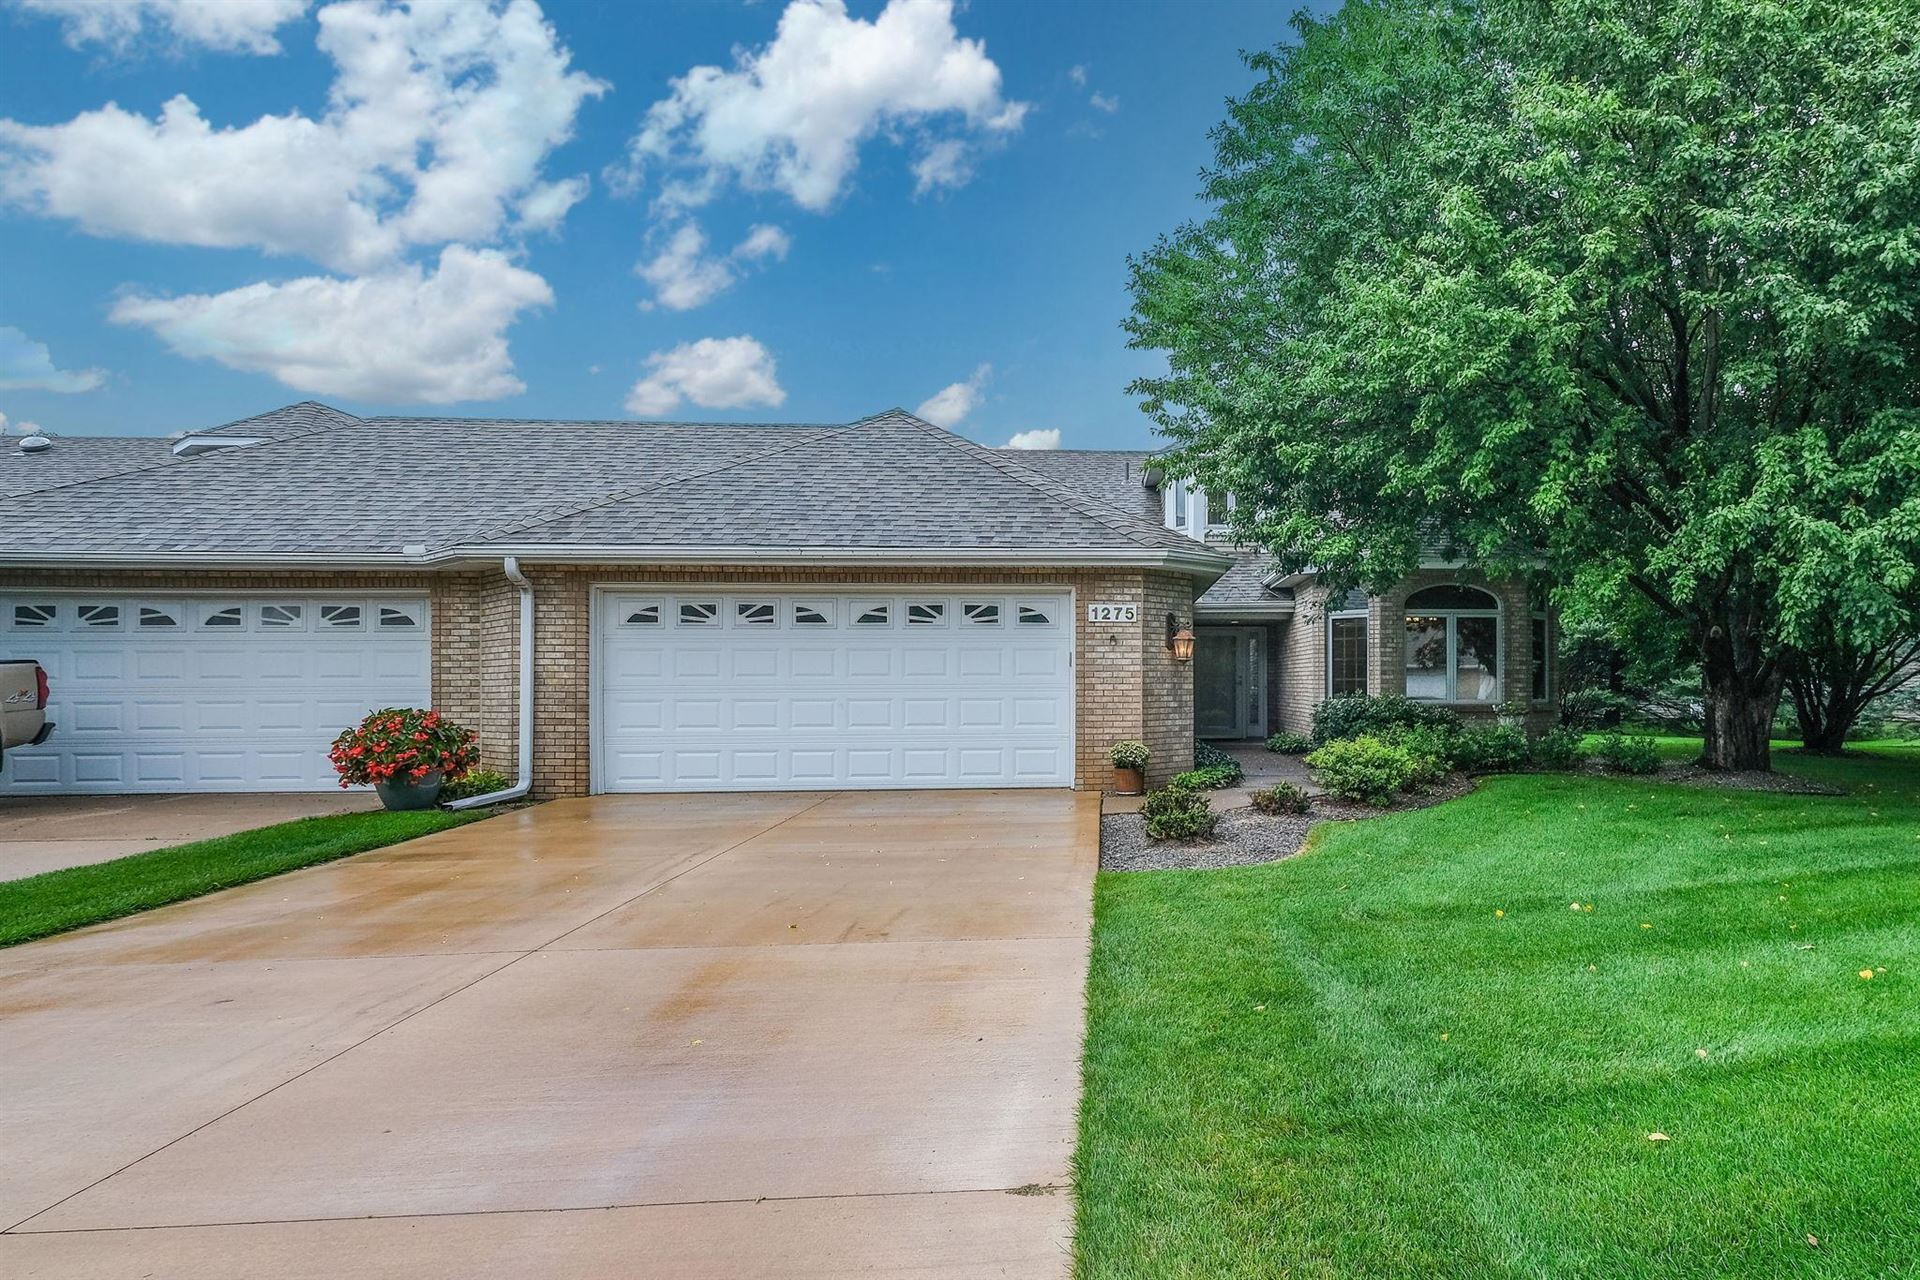 1275 Silverthorn Drive, Shoreview, MN 55126 - MLS#: 5637975